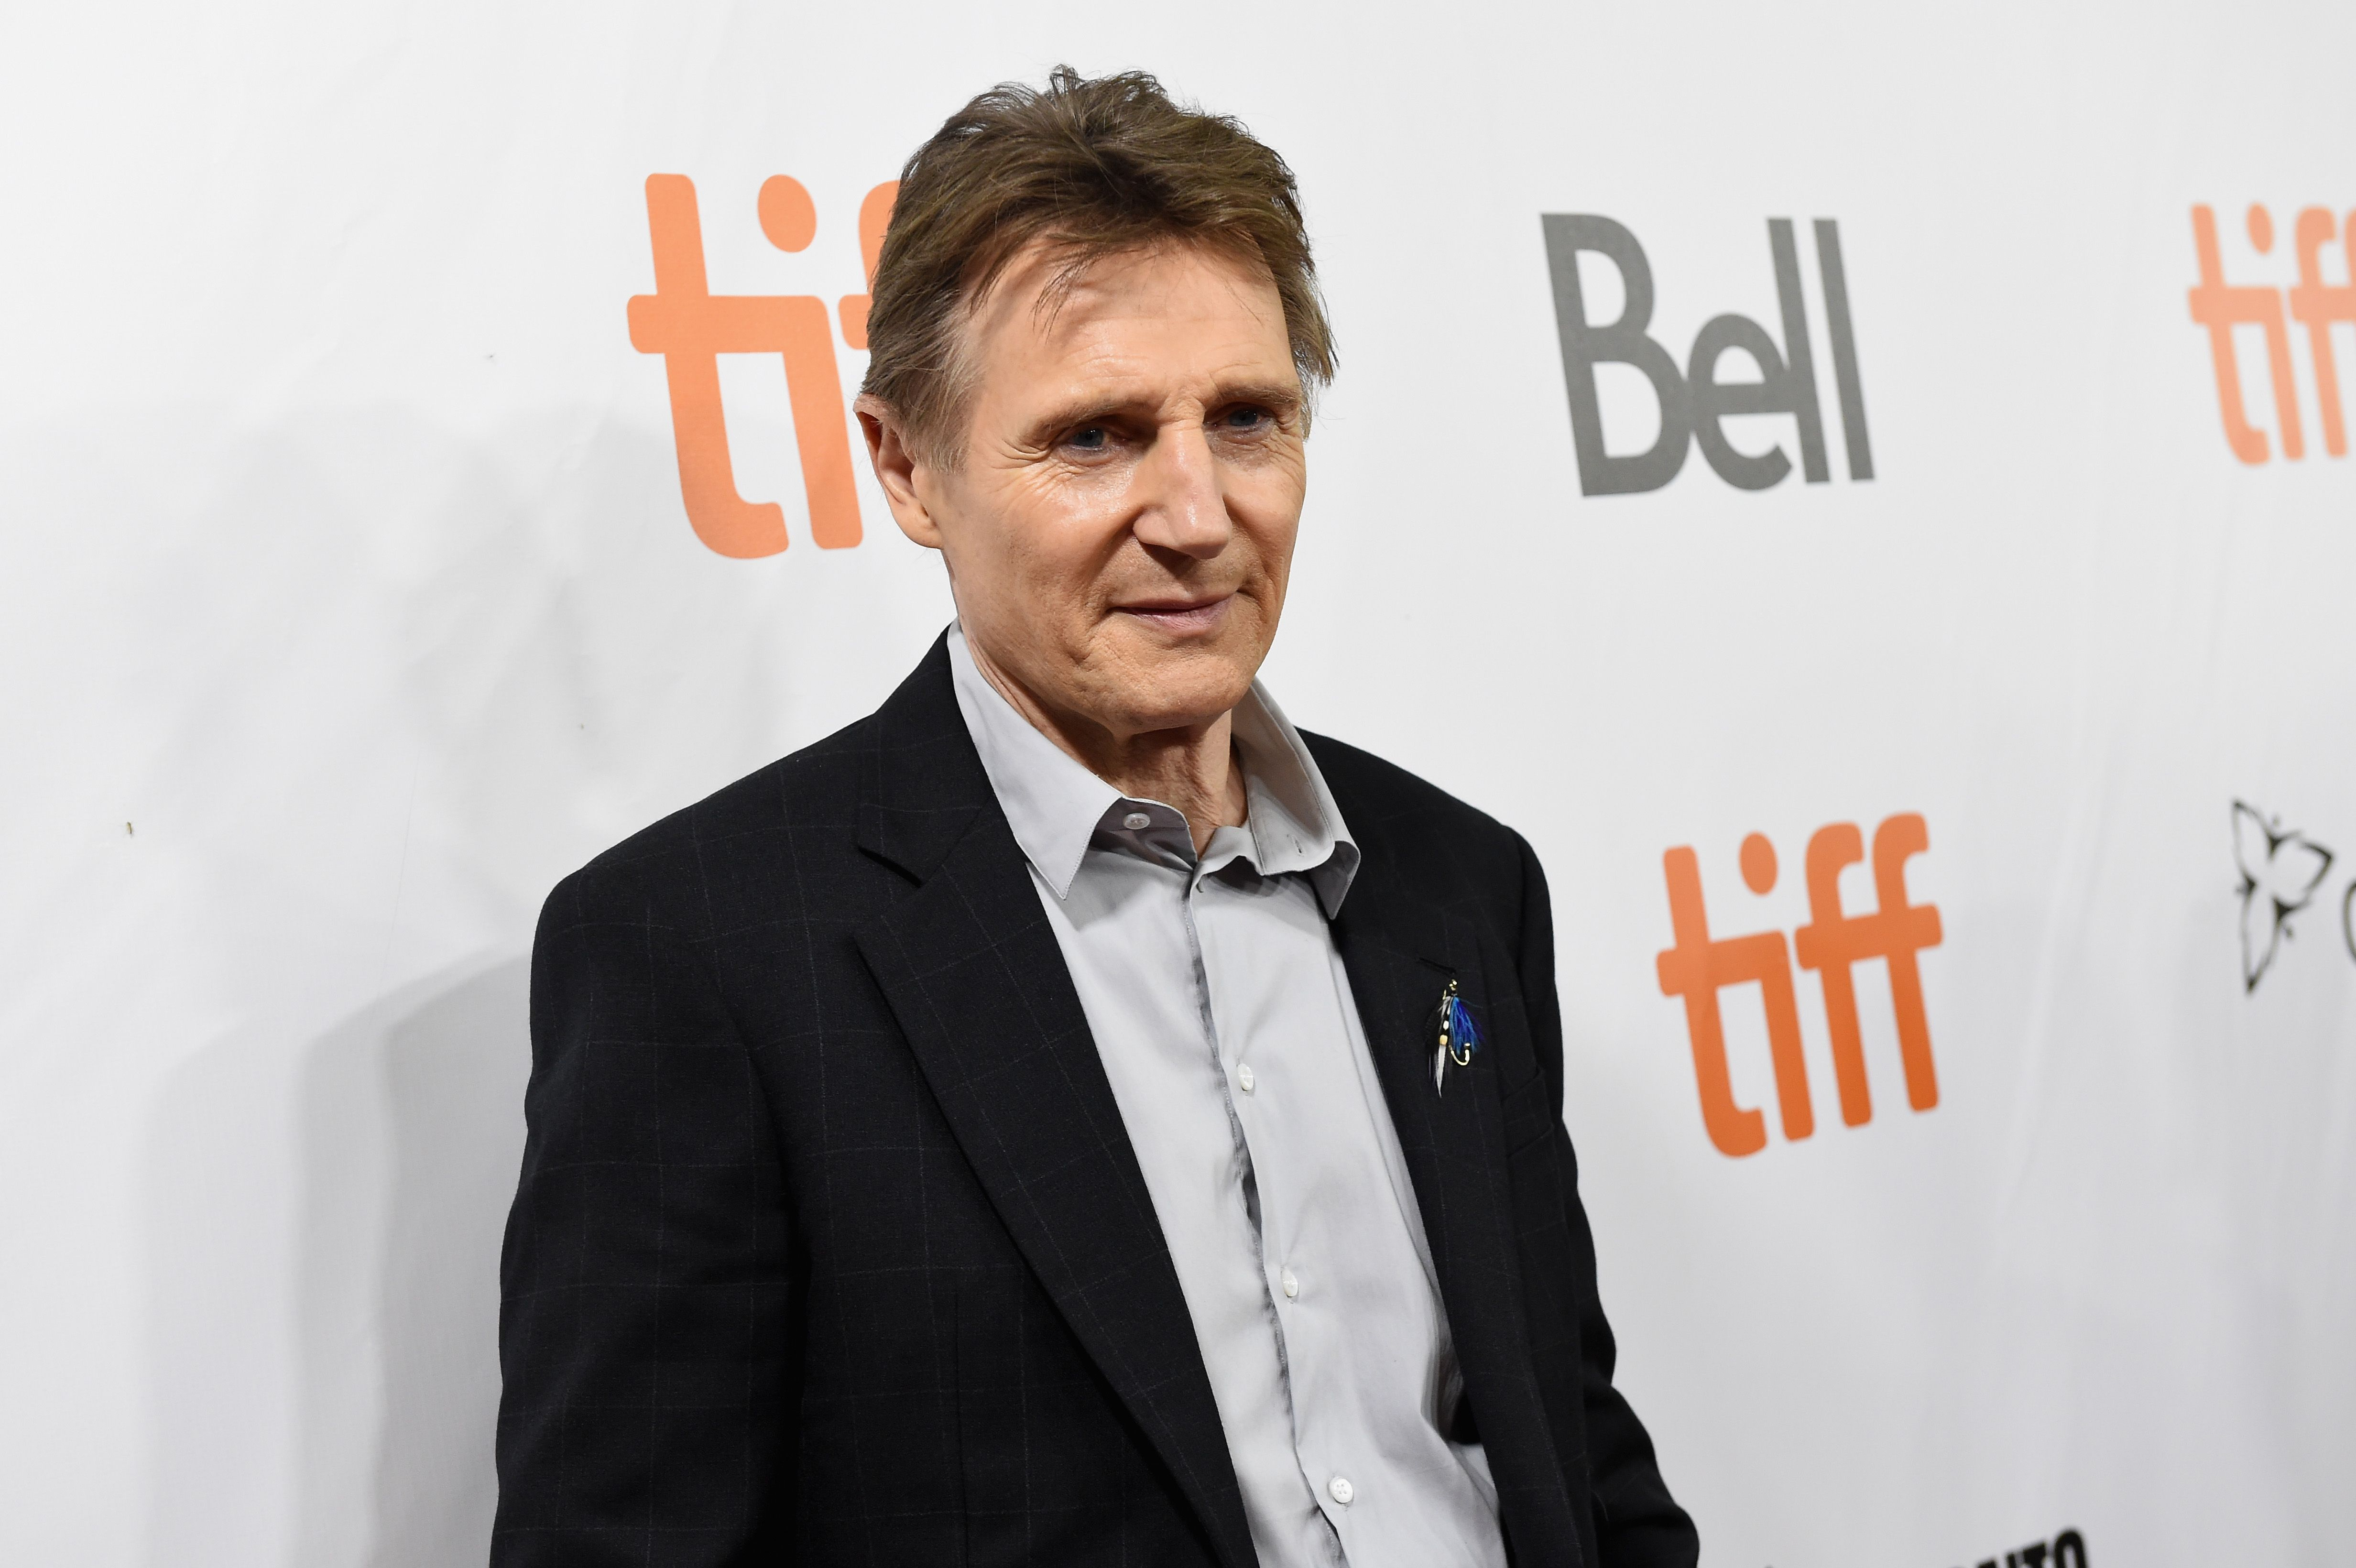 Liam Neeson at 66 Even in his 60s, Neeson still does some of his own stunts in action movies like Taken and The Commuter .